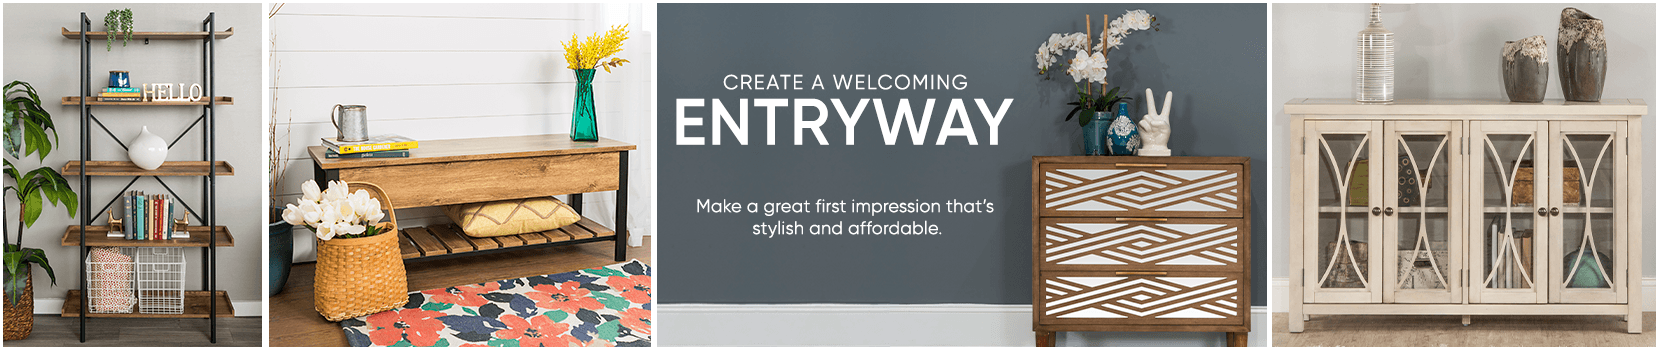 create a welcoming entryway. make a great first impression that's stylish and affordable